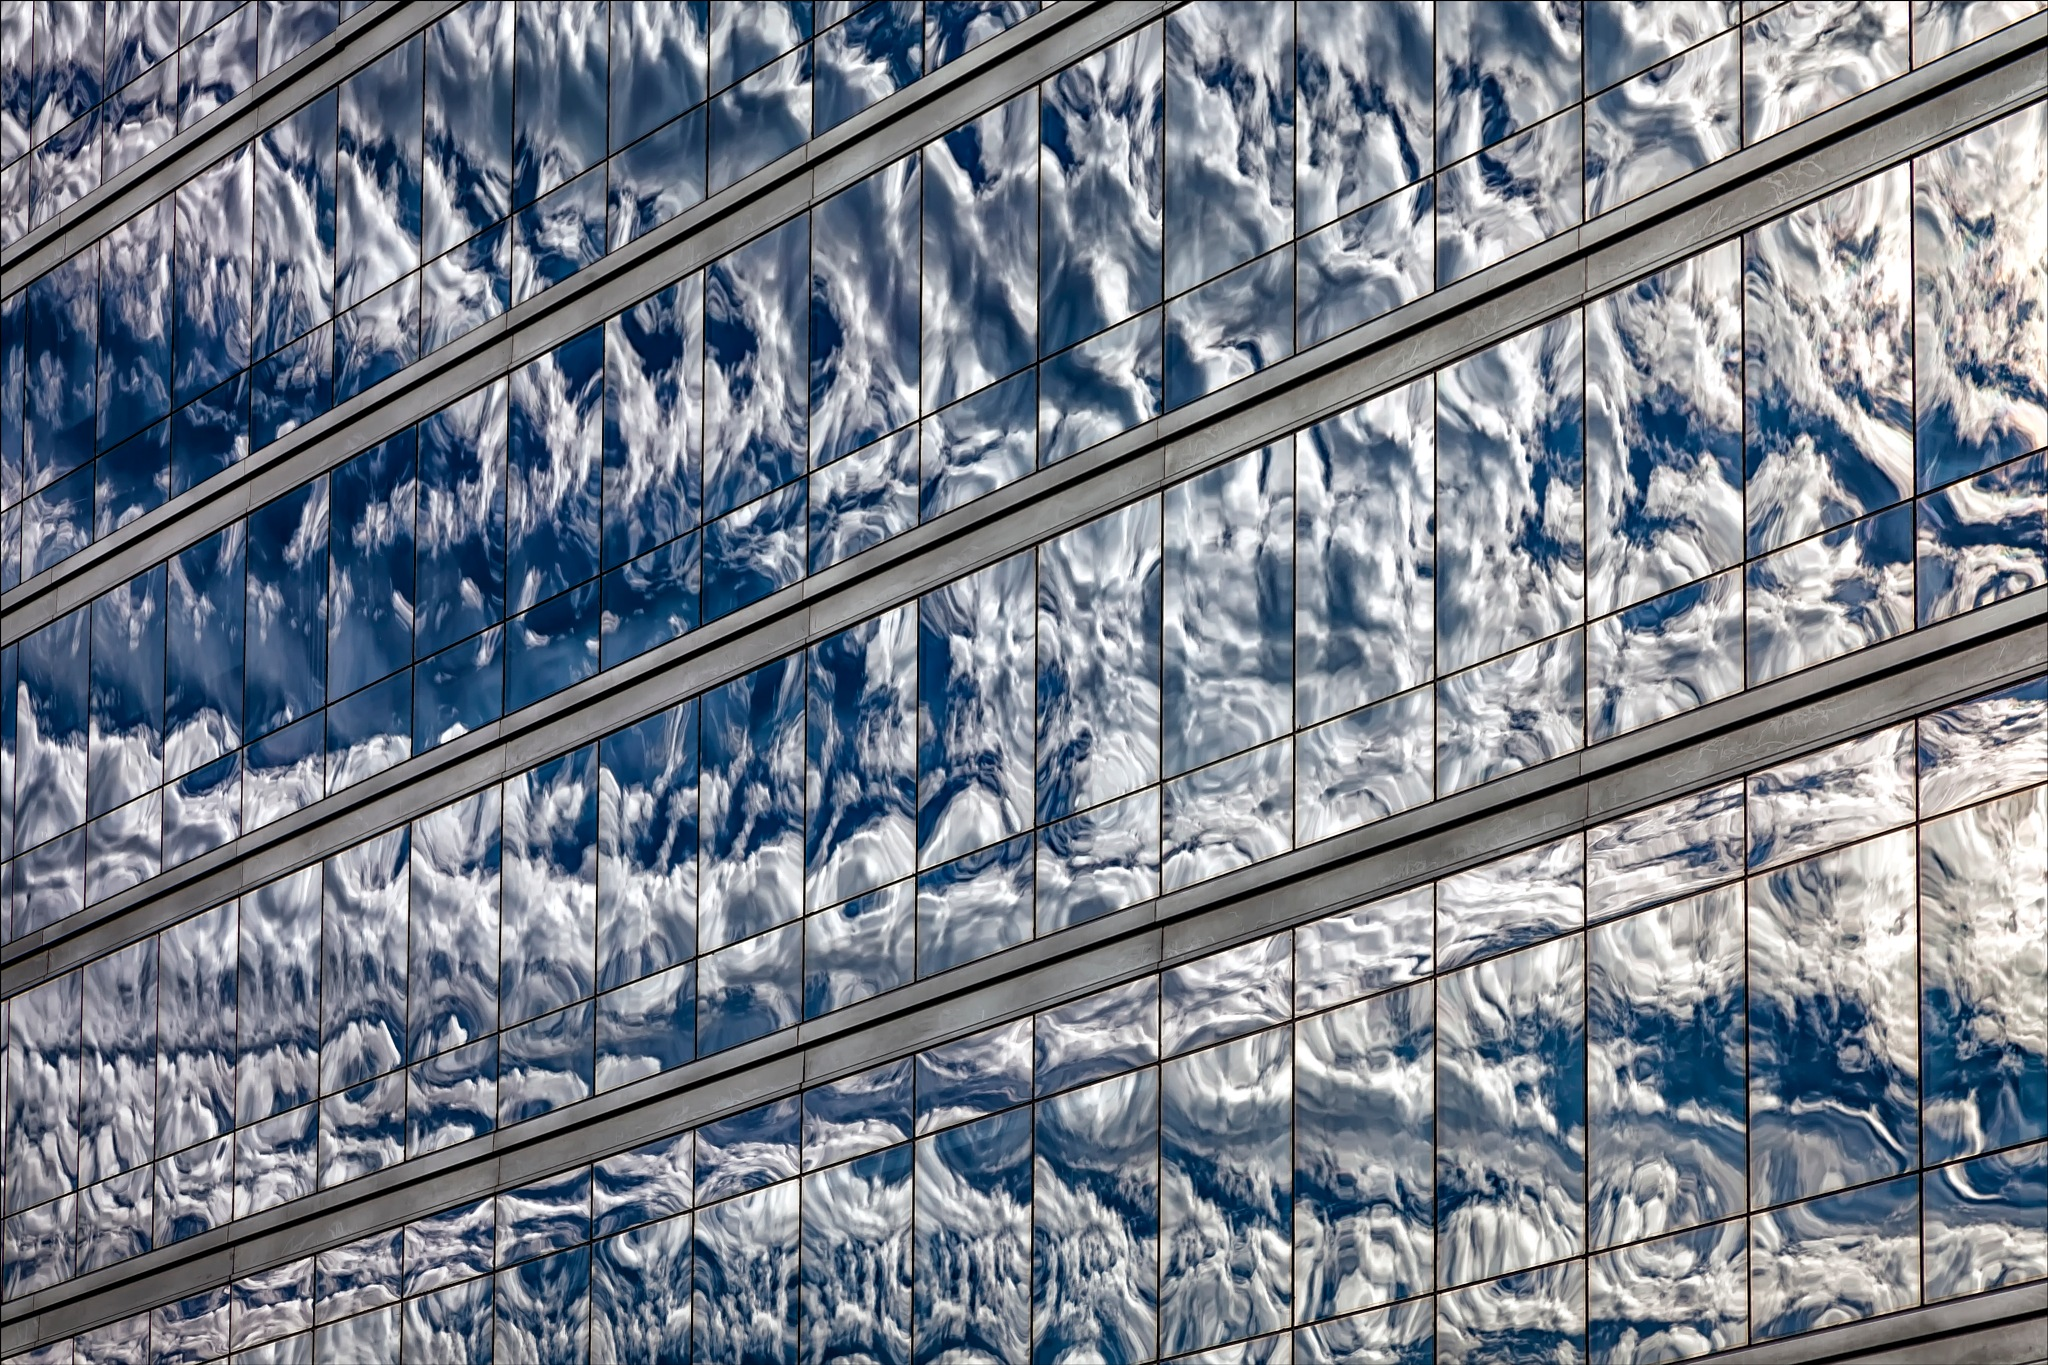 Reflective Glass Architecture Sky and Clouds by robertullmann